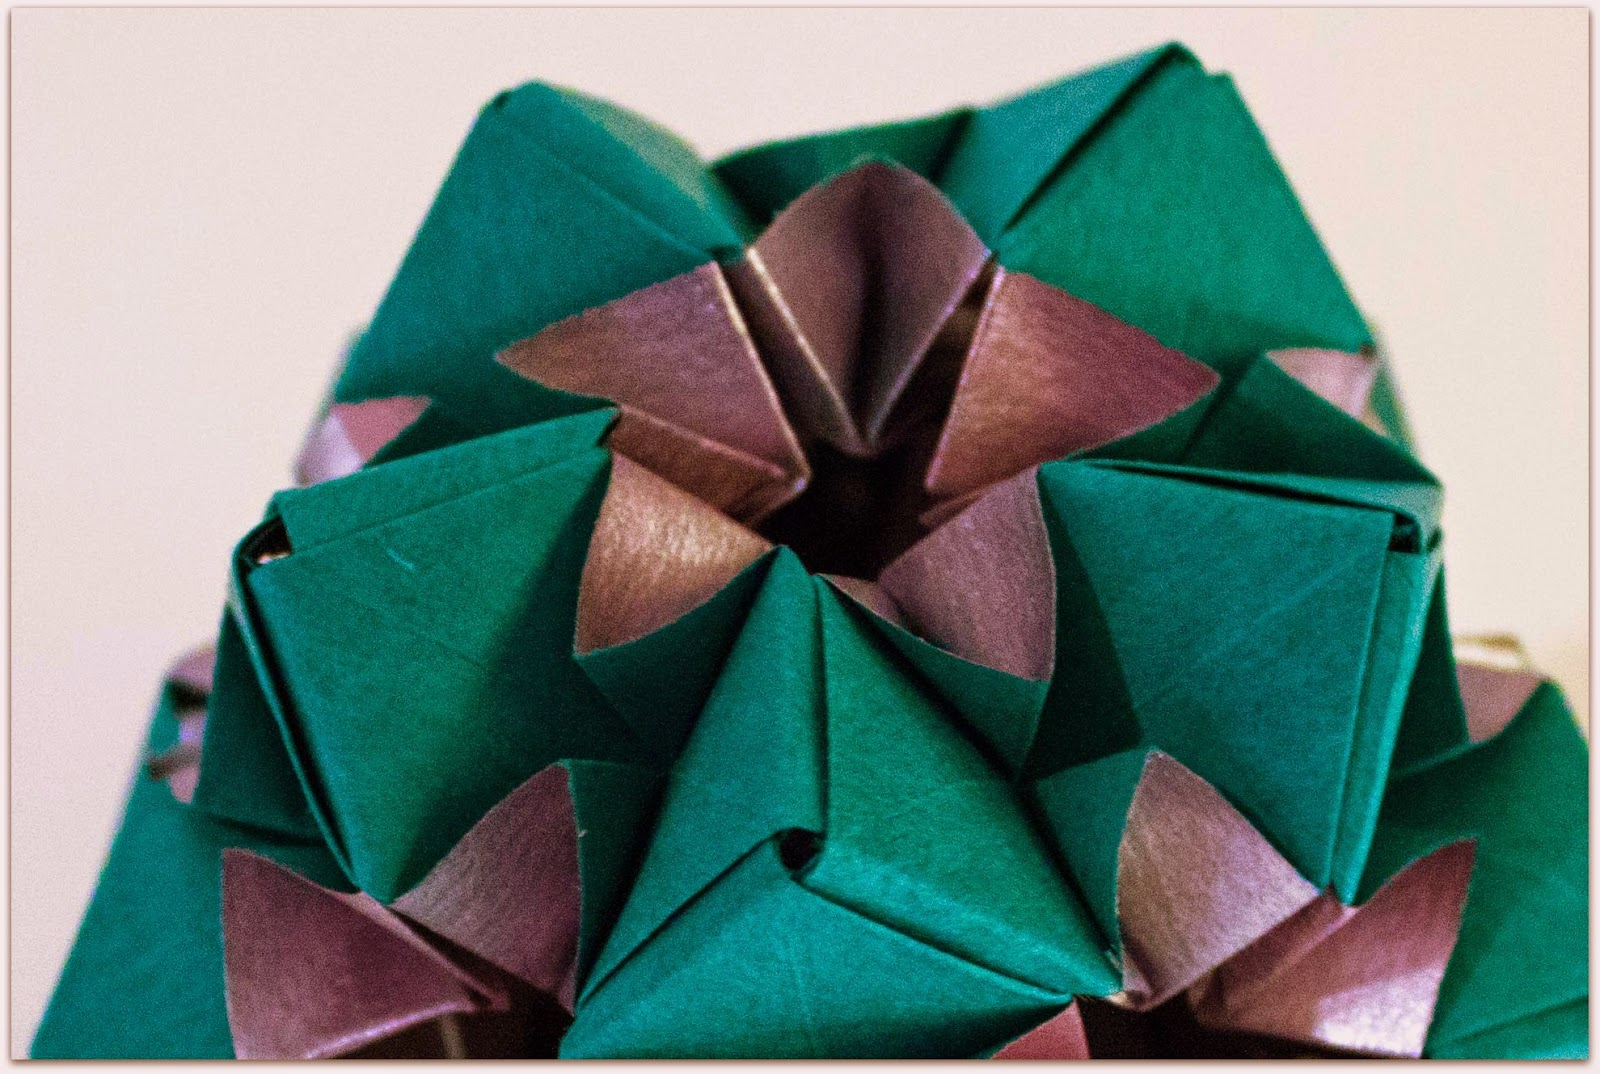 Will fold for paper star flower design by meenakshi mukerji the design can be found in the book exquisite modular origami this was one of the first modular origami books i purchased mightylinksfo